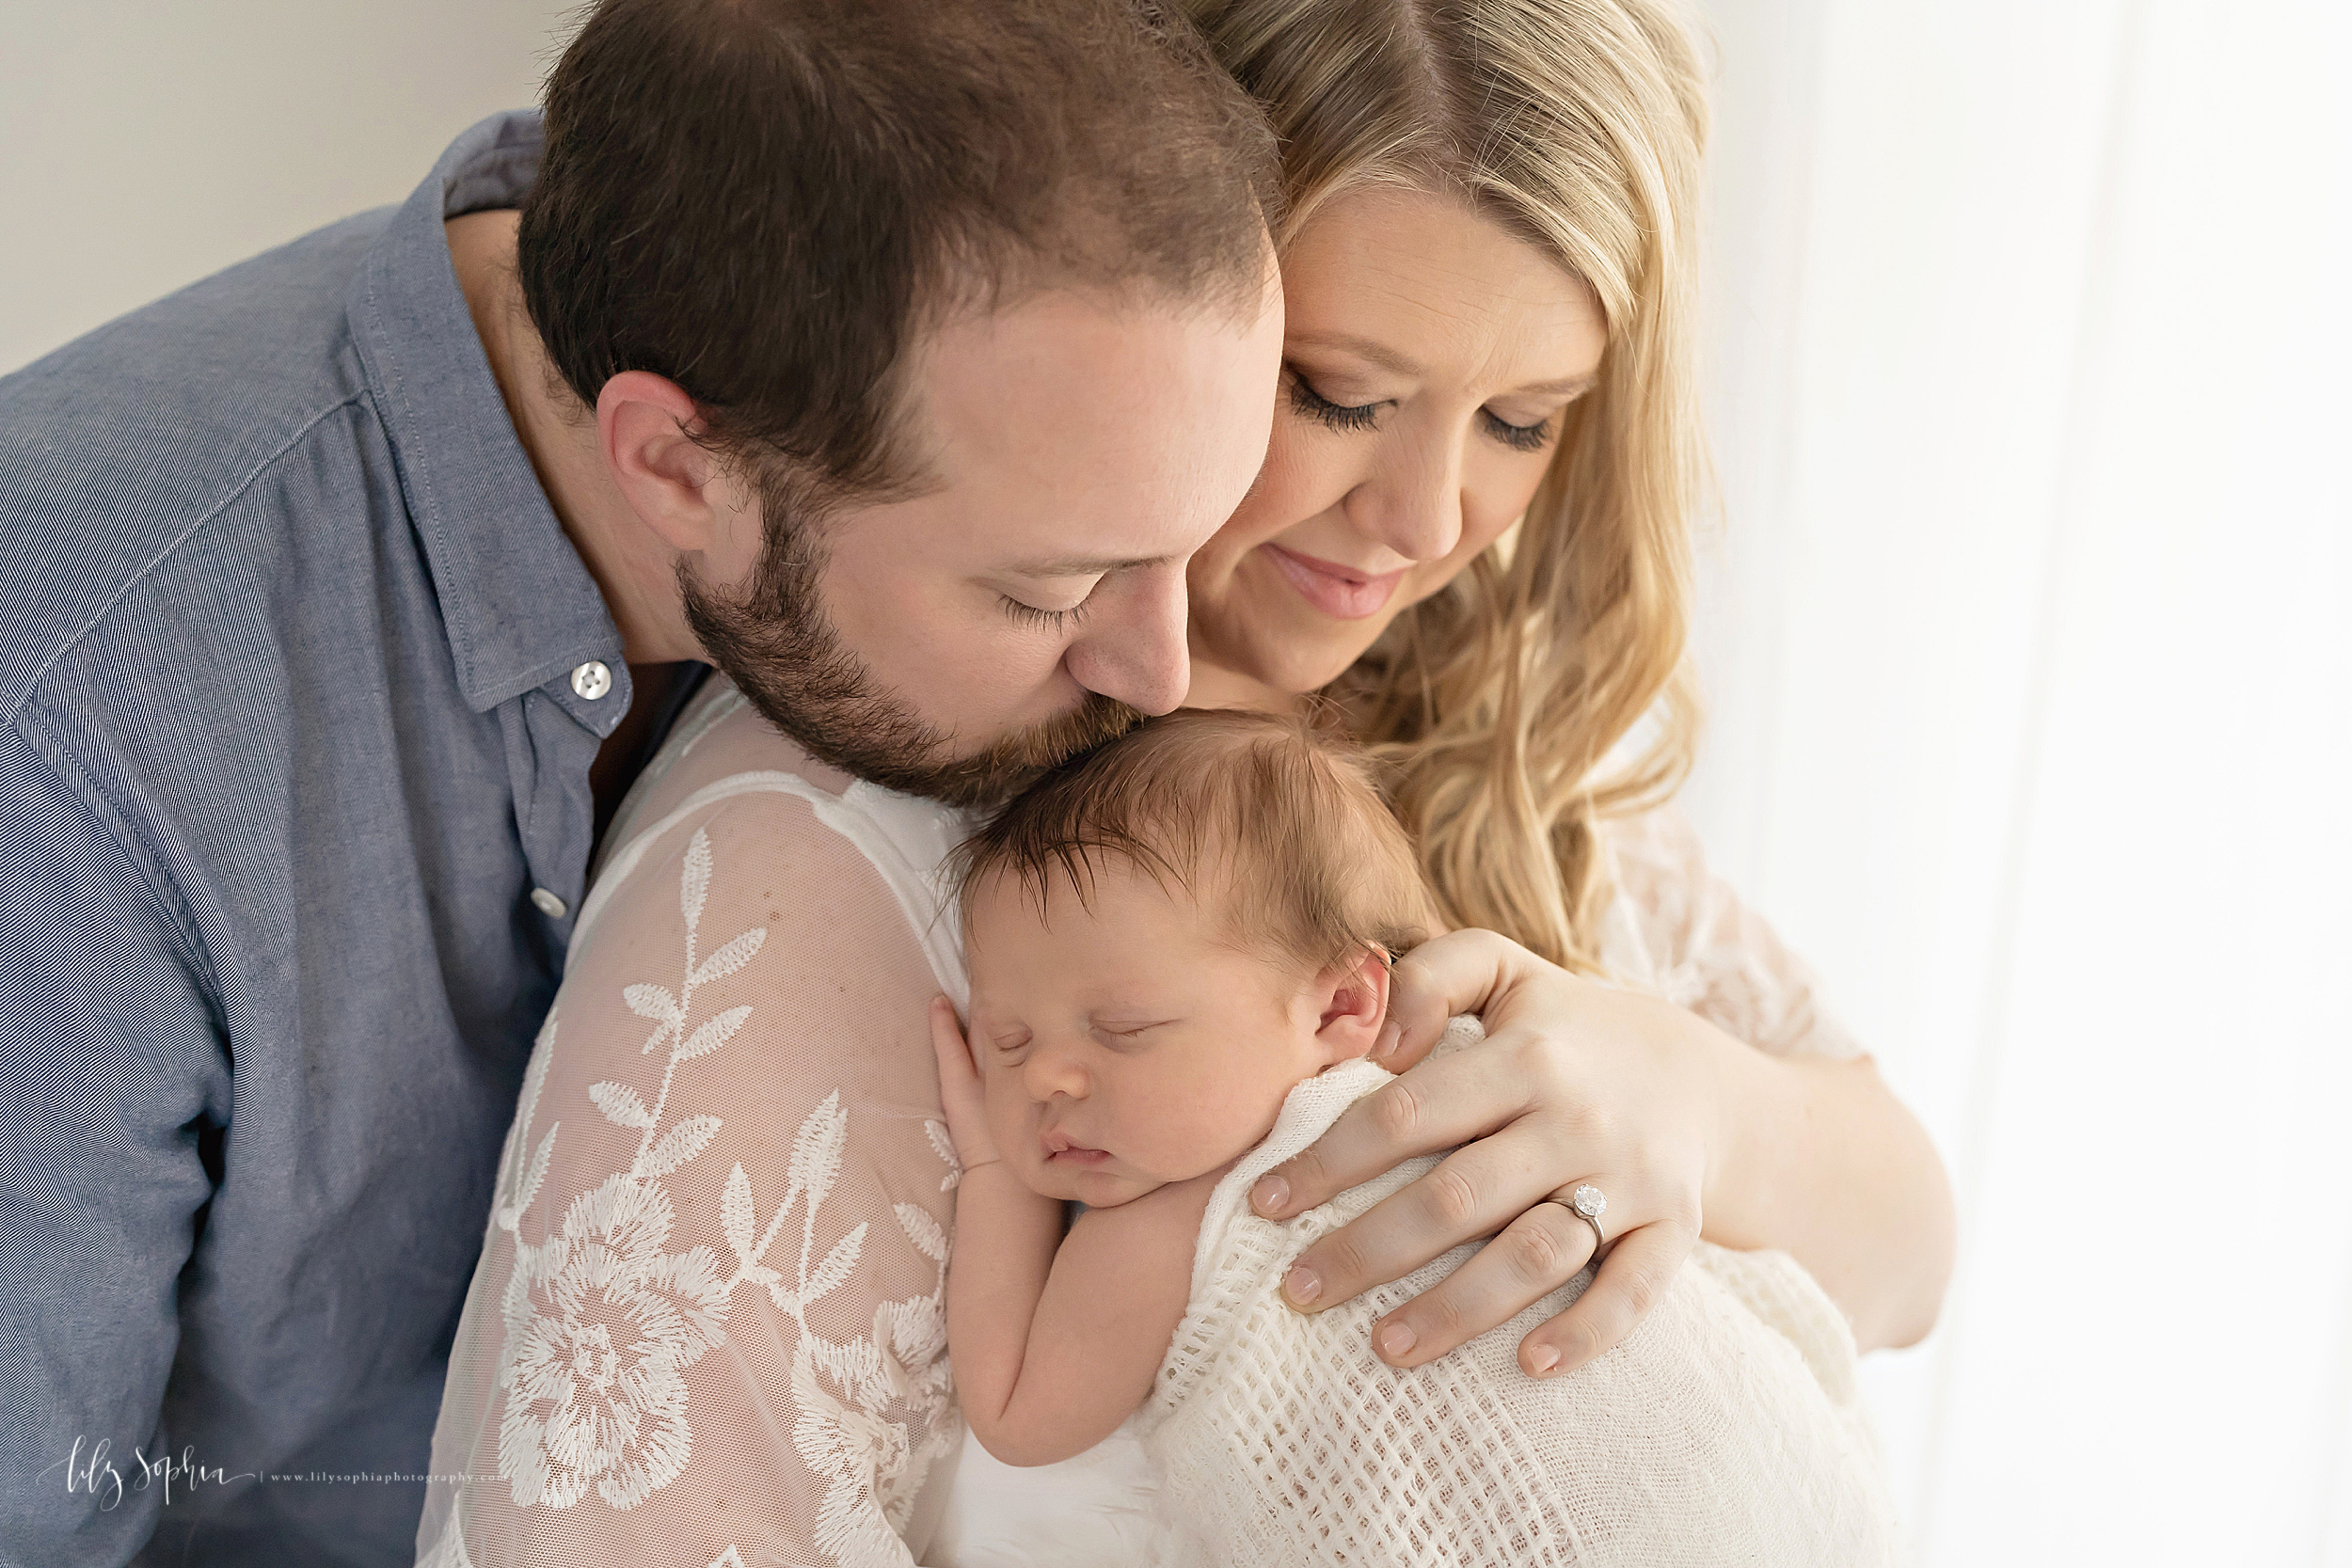 atlanta-midtown-brookhaven-ashford-dunwoody-virginia-highlands-roswell-decatur-lily-sophia-photography-newborn-baby-boy-big-brother-family-studio-session_0638.jpg